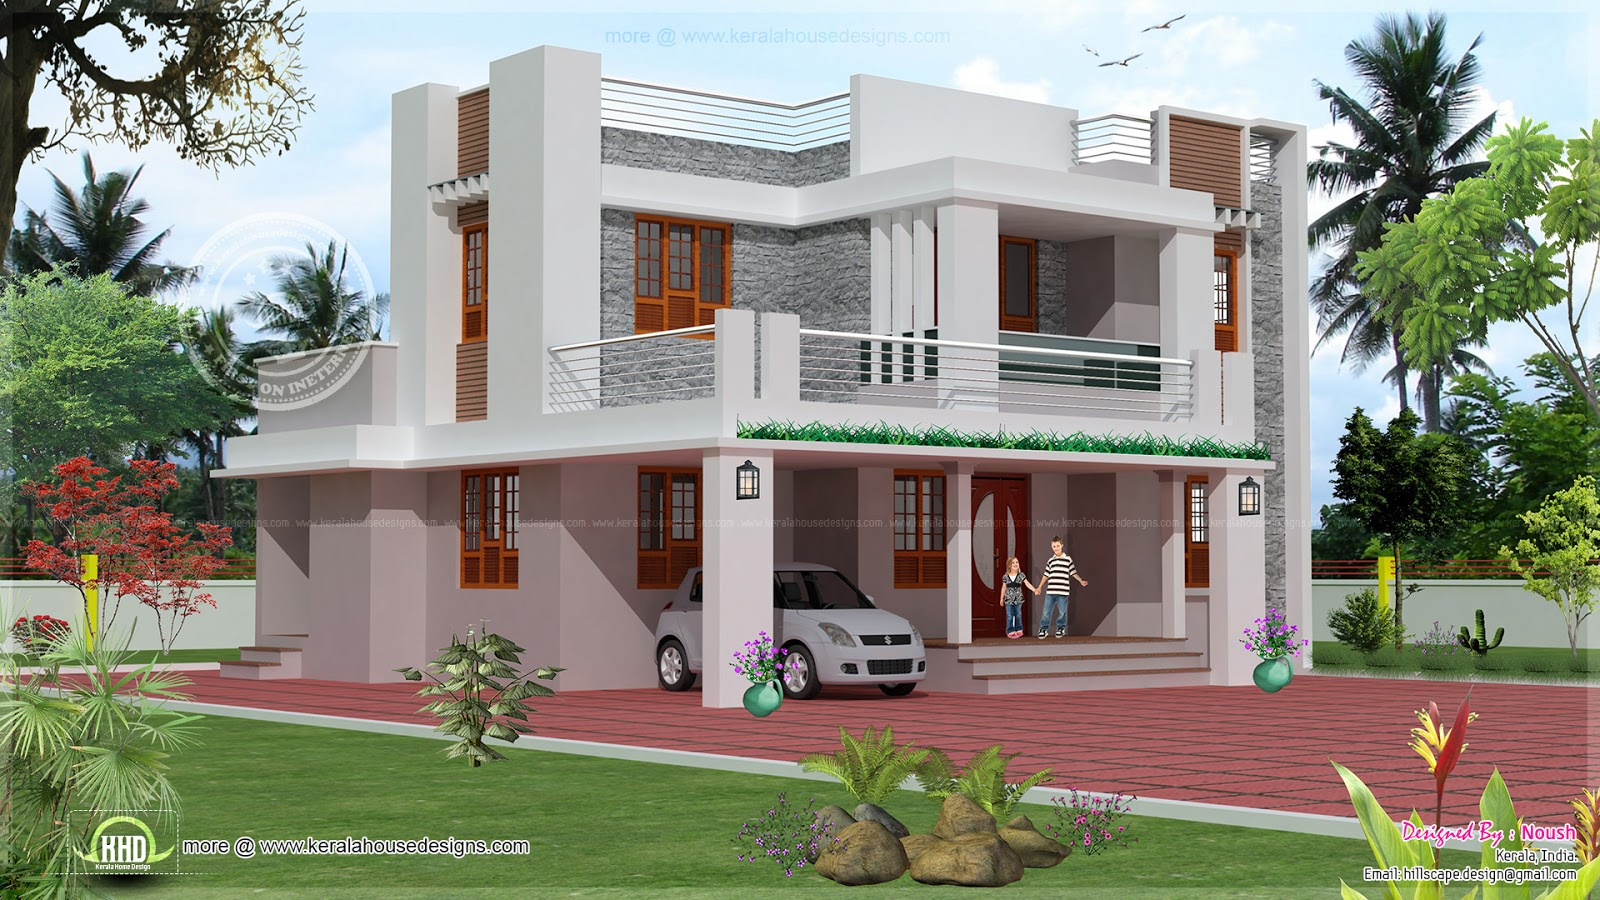 4 bedroom 2 story house exterior design house design plans for House exterior design pictures